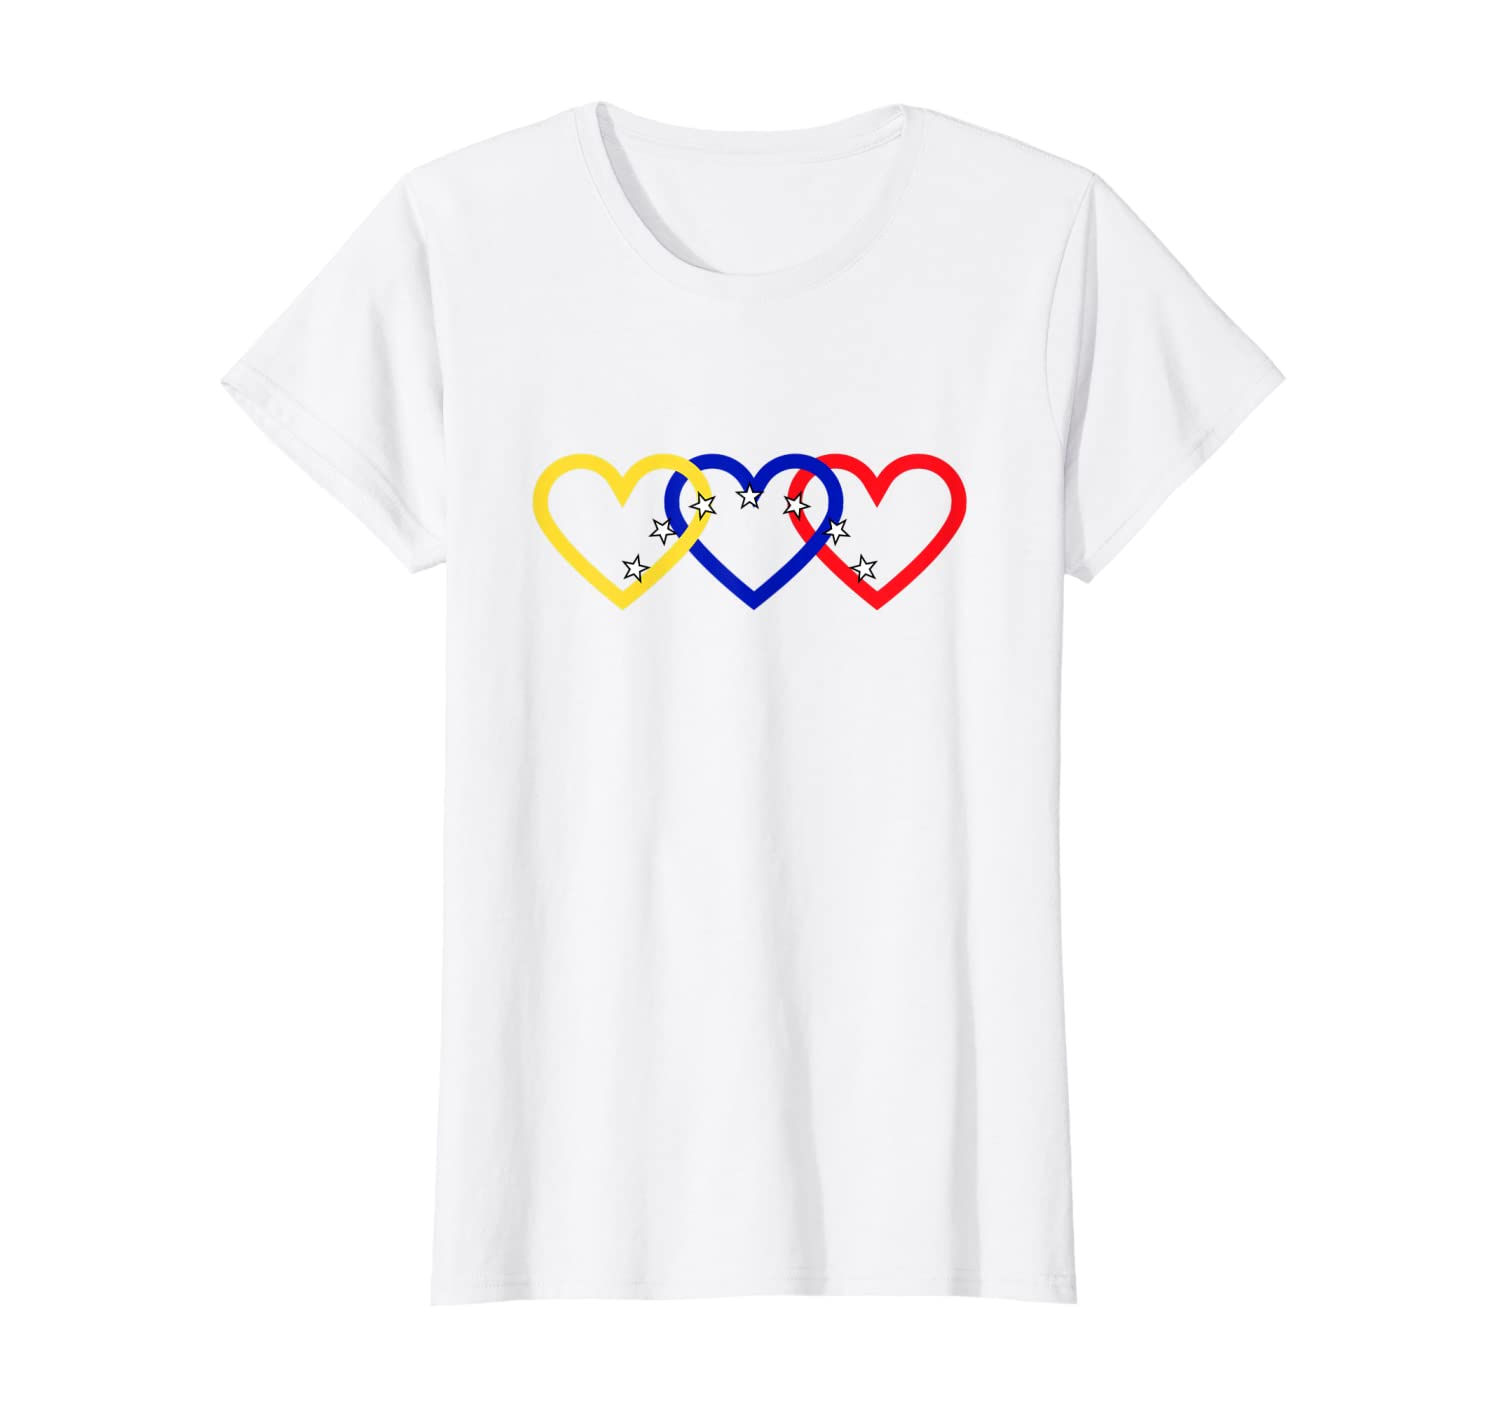 Amazon.com: Venezuela Te Amo Tricolor Corazon 7 Estrellas ...